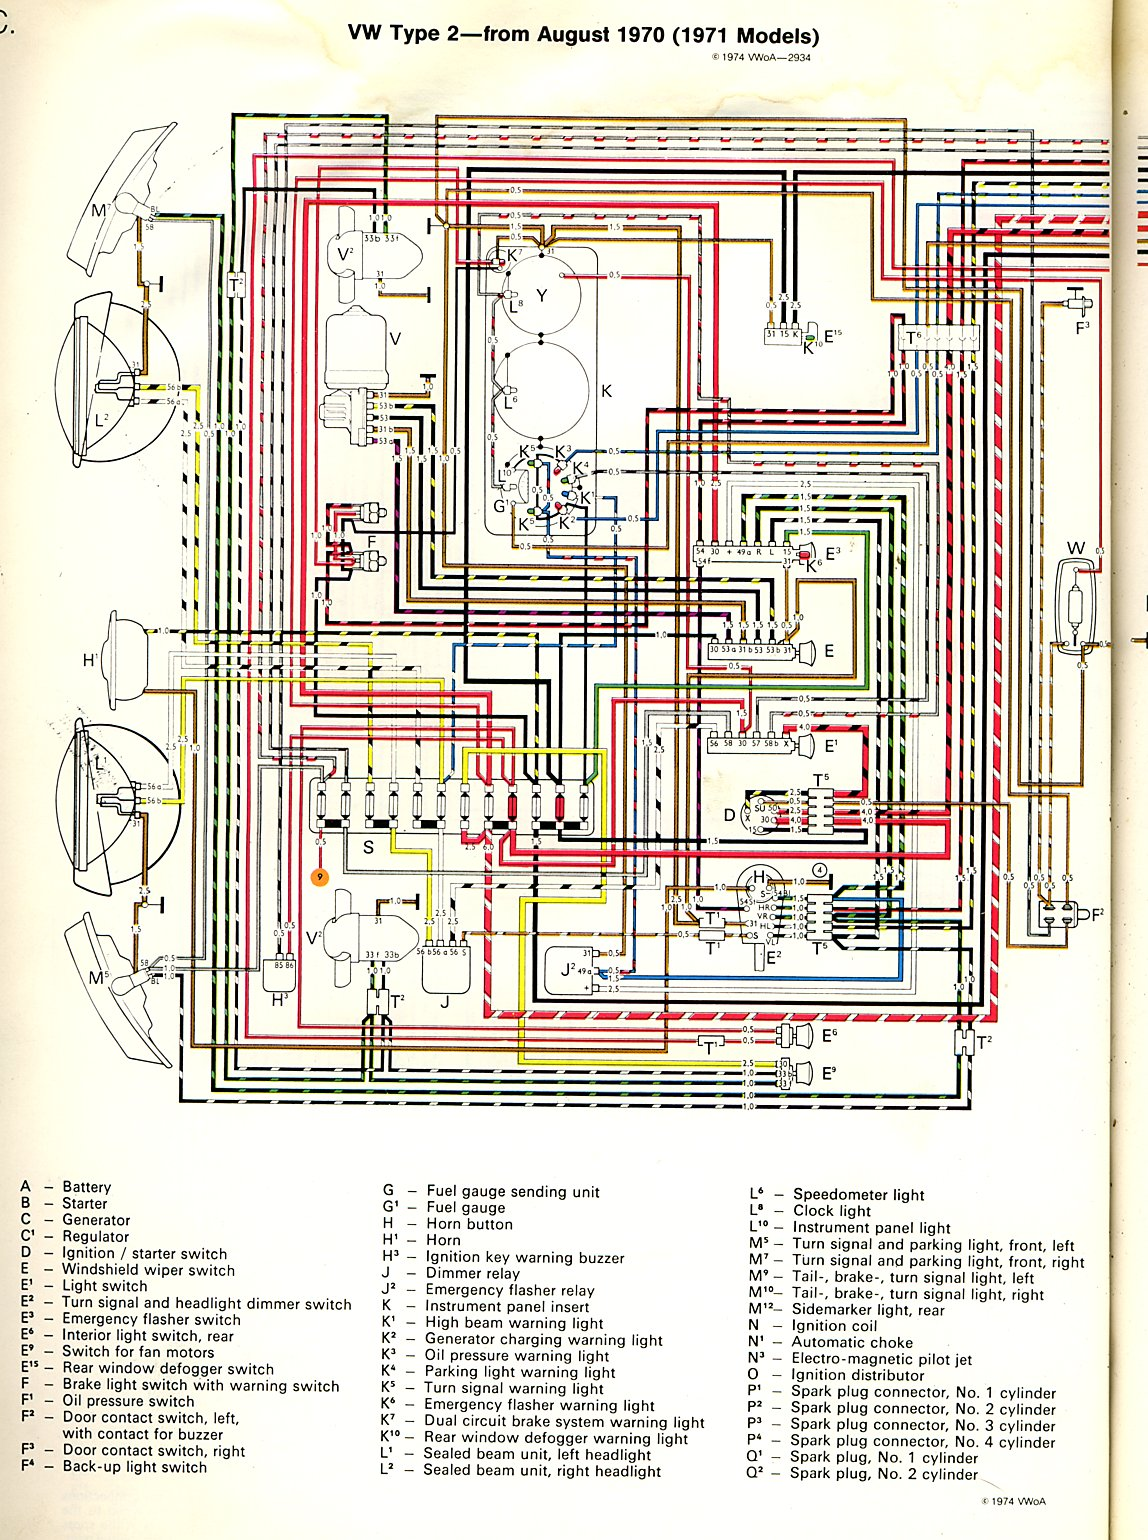 vw bus wiring diagrams vw wiring diagrams online thesamba com type 2 wiring diagrams